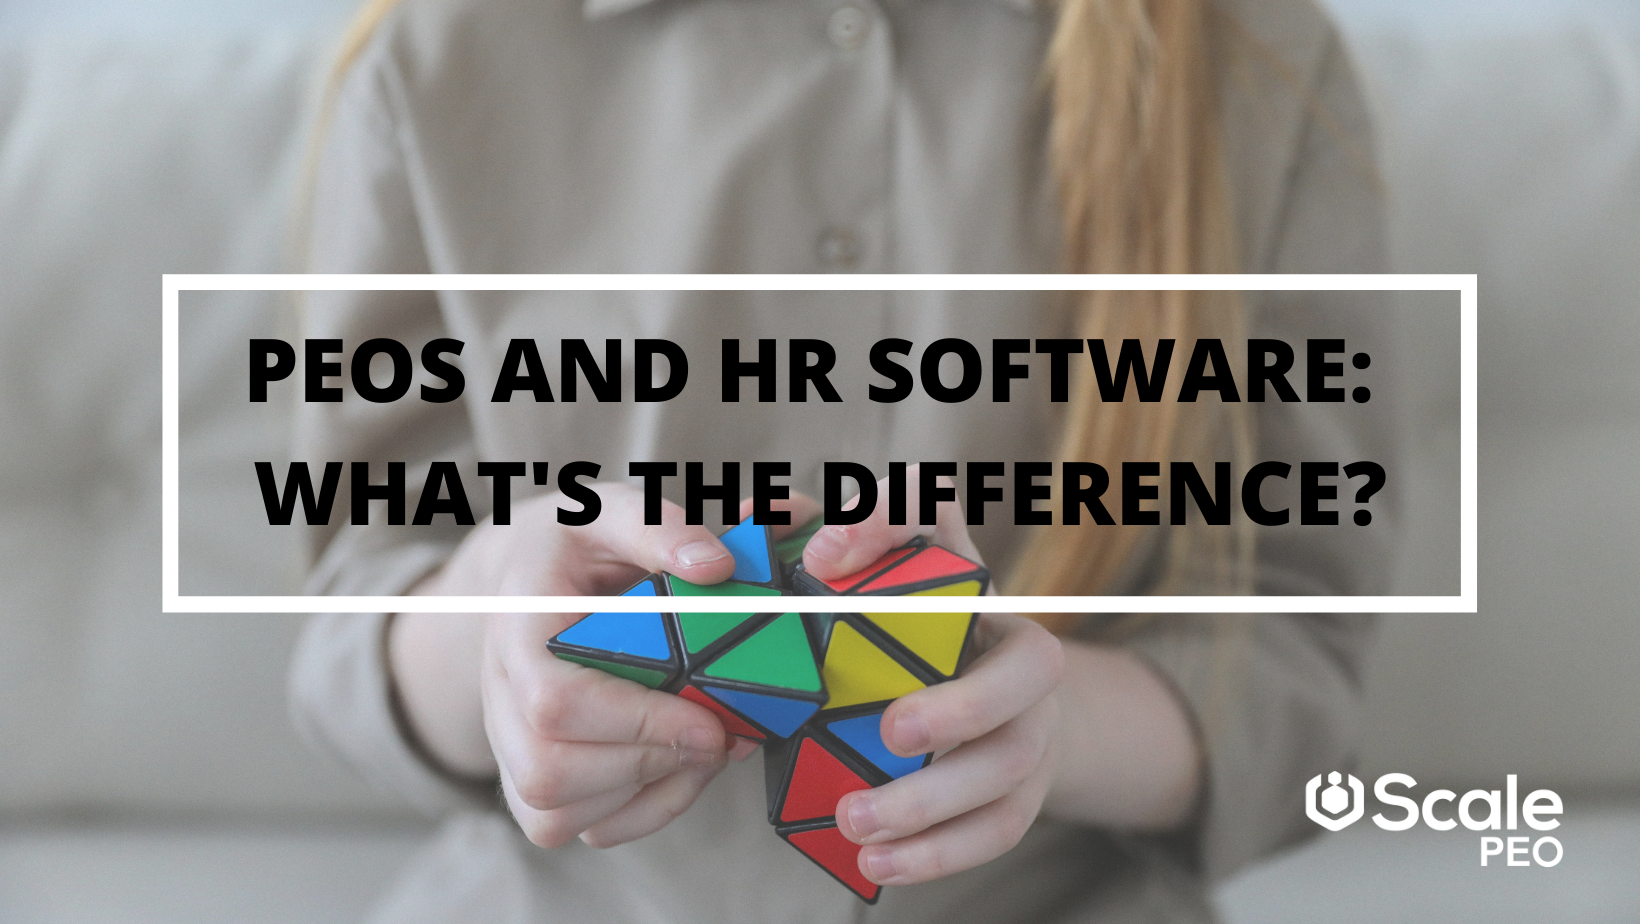 PEOs and HR Software Whats the Difference